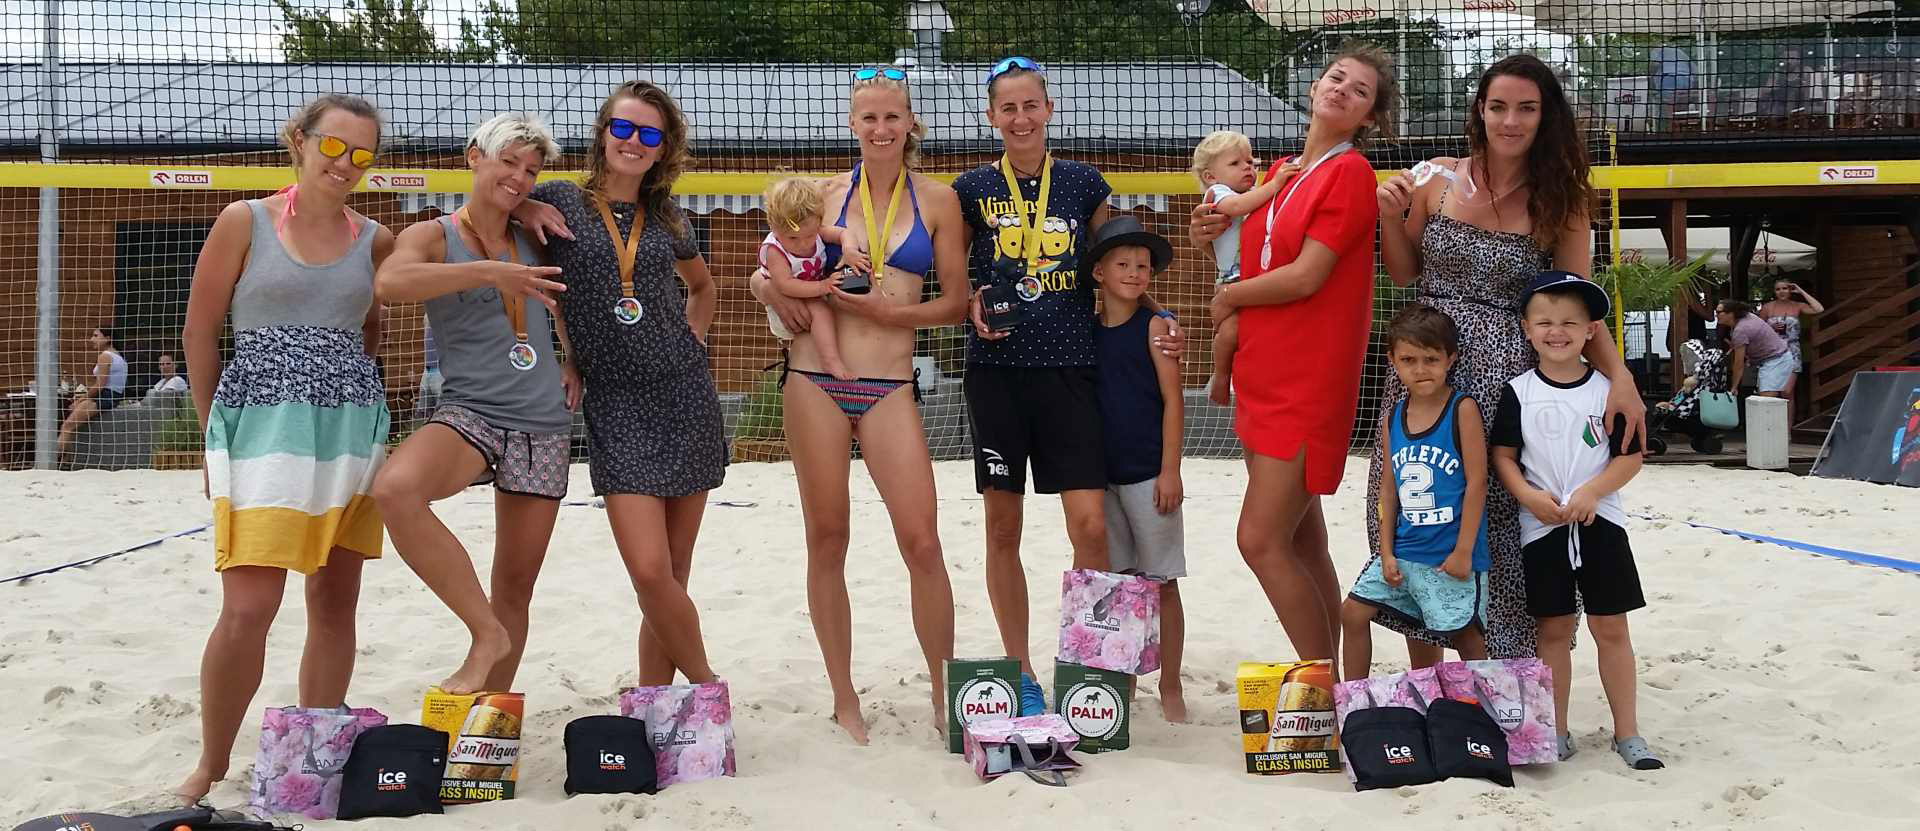 V ice watch beach volleyball cup 2018 kobiety